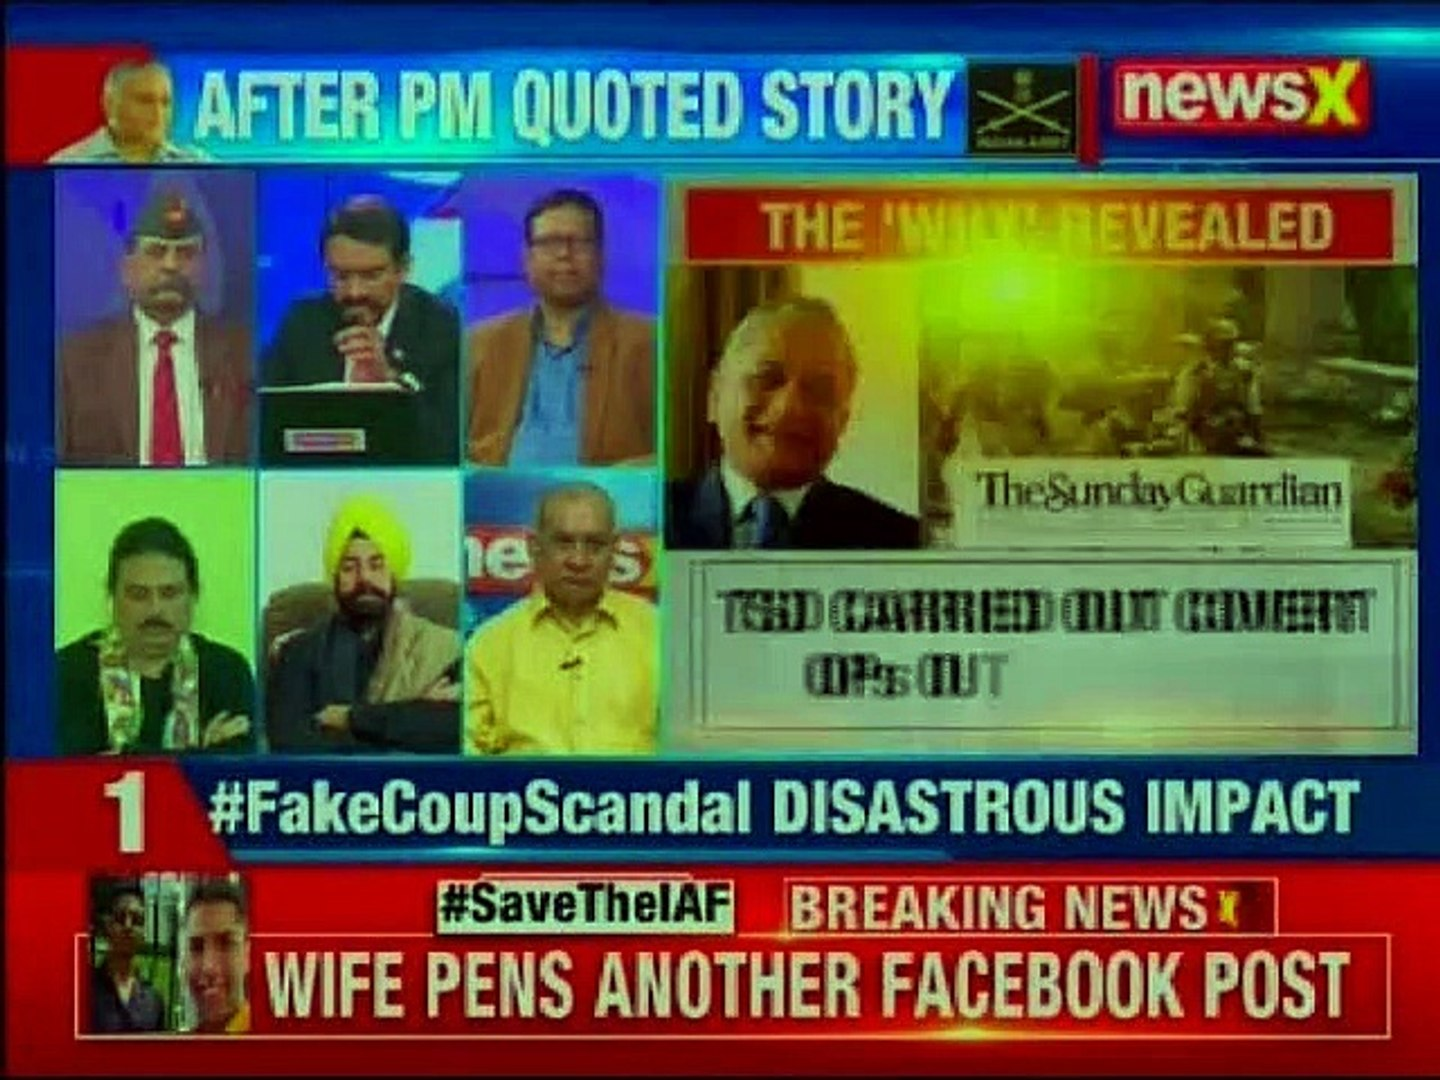 Fake Coup Scandal: The full story is out; ego trumped war on terror?   Nation at 9